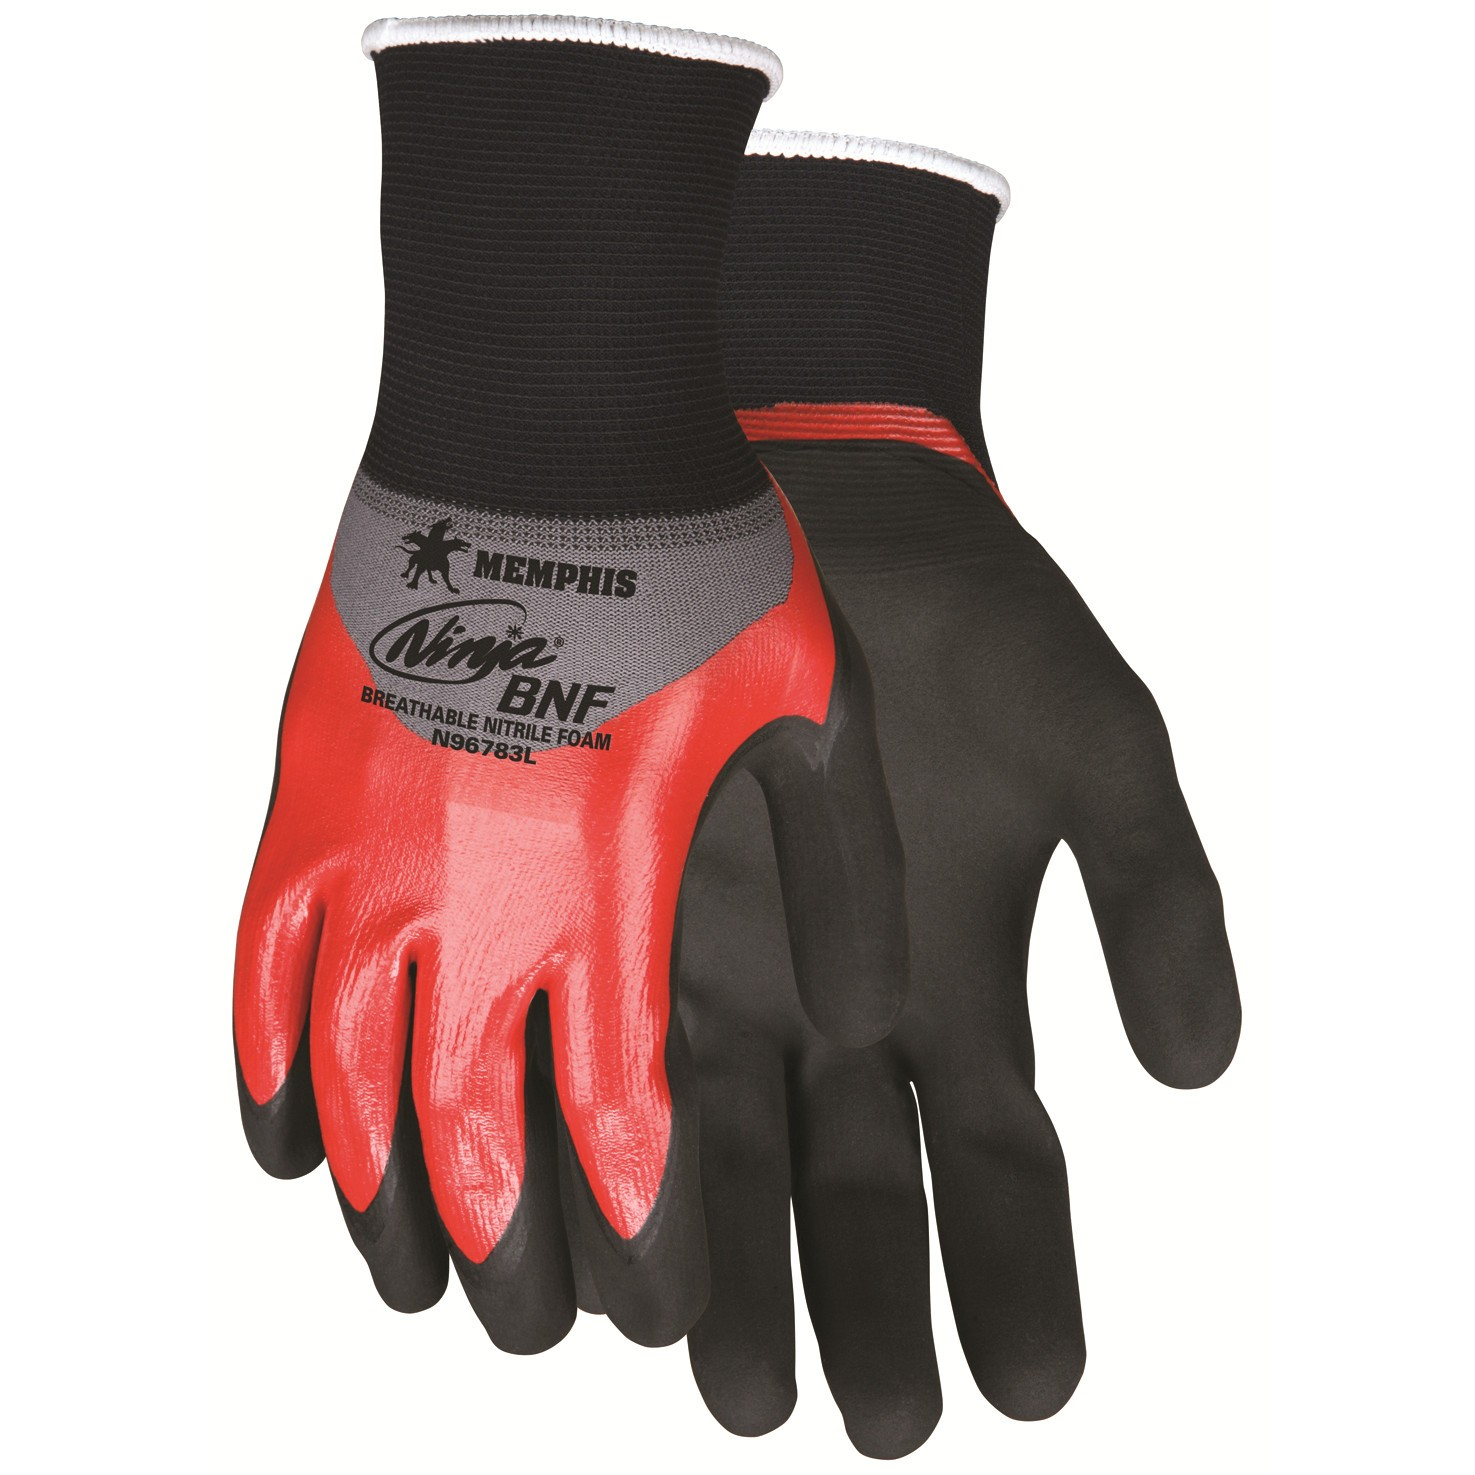 N96783 - MCR Safety Memphis Ninja® BNF 18 Gauge Nylon/Spandex, Over Knuckle Nitrile Dip, black BNF palm & finger